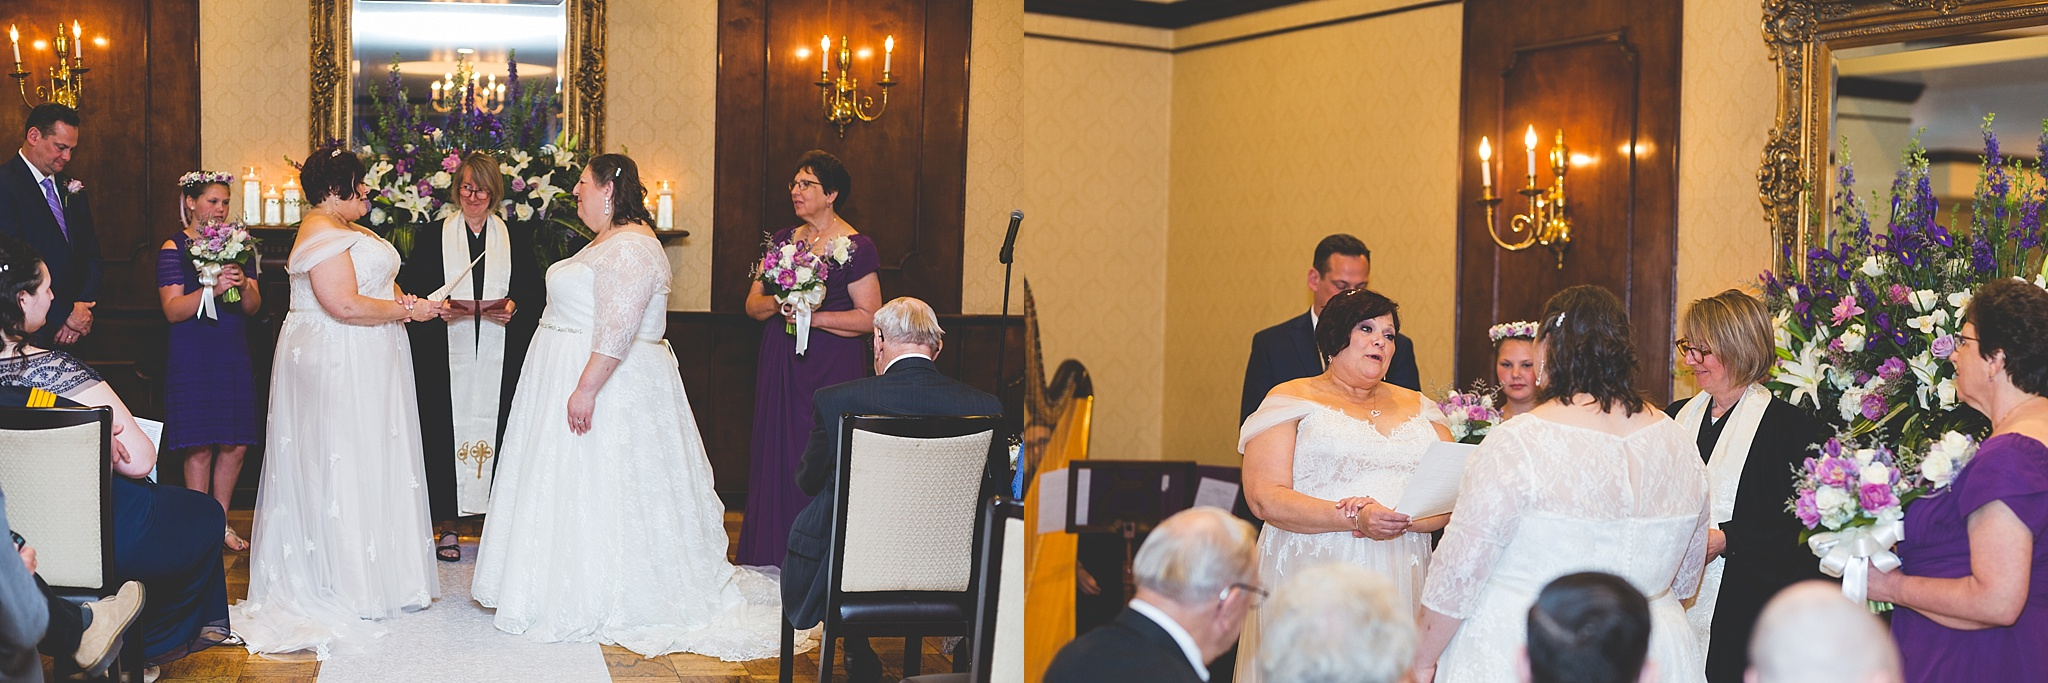 Albany_Wedding_Photographer_8792.jpg